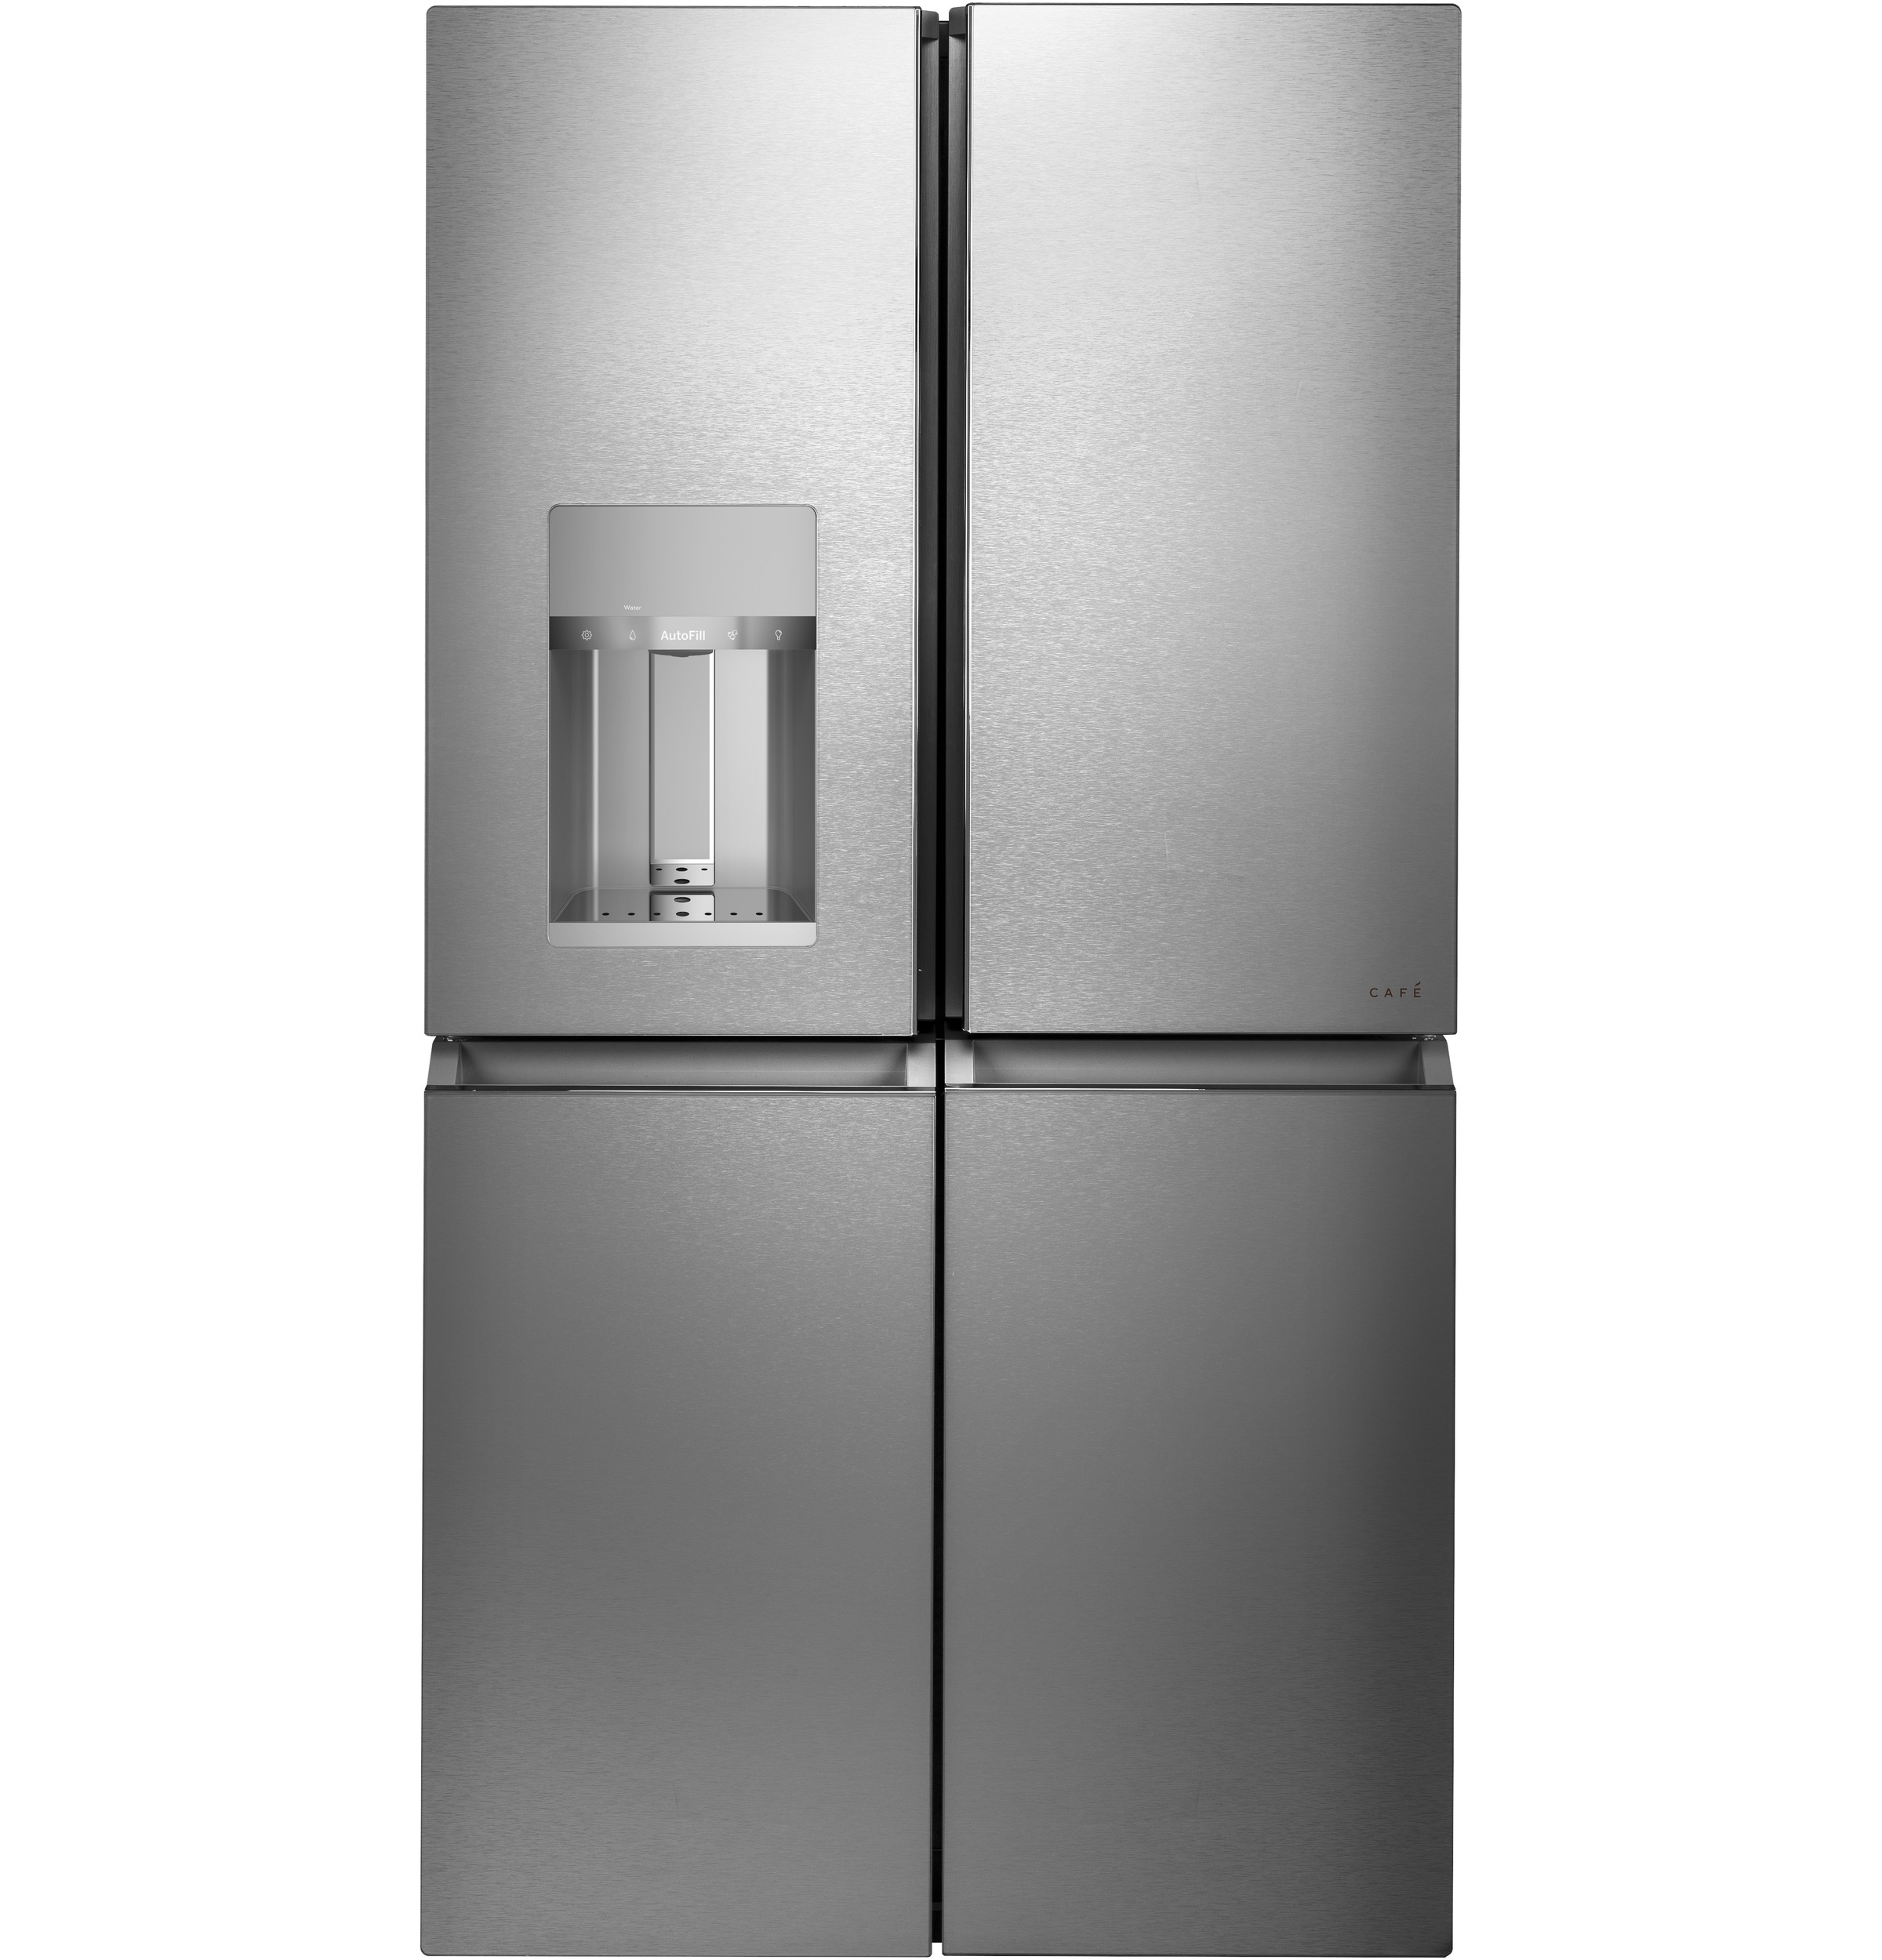 Cafe Café™ ENERGY STAR® 27.4 Cu. Ft. Smart Quad-Door Refrigerator in Platinum Glass